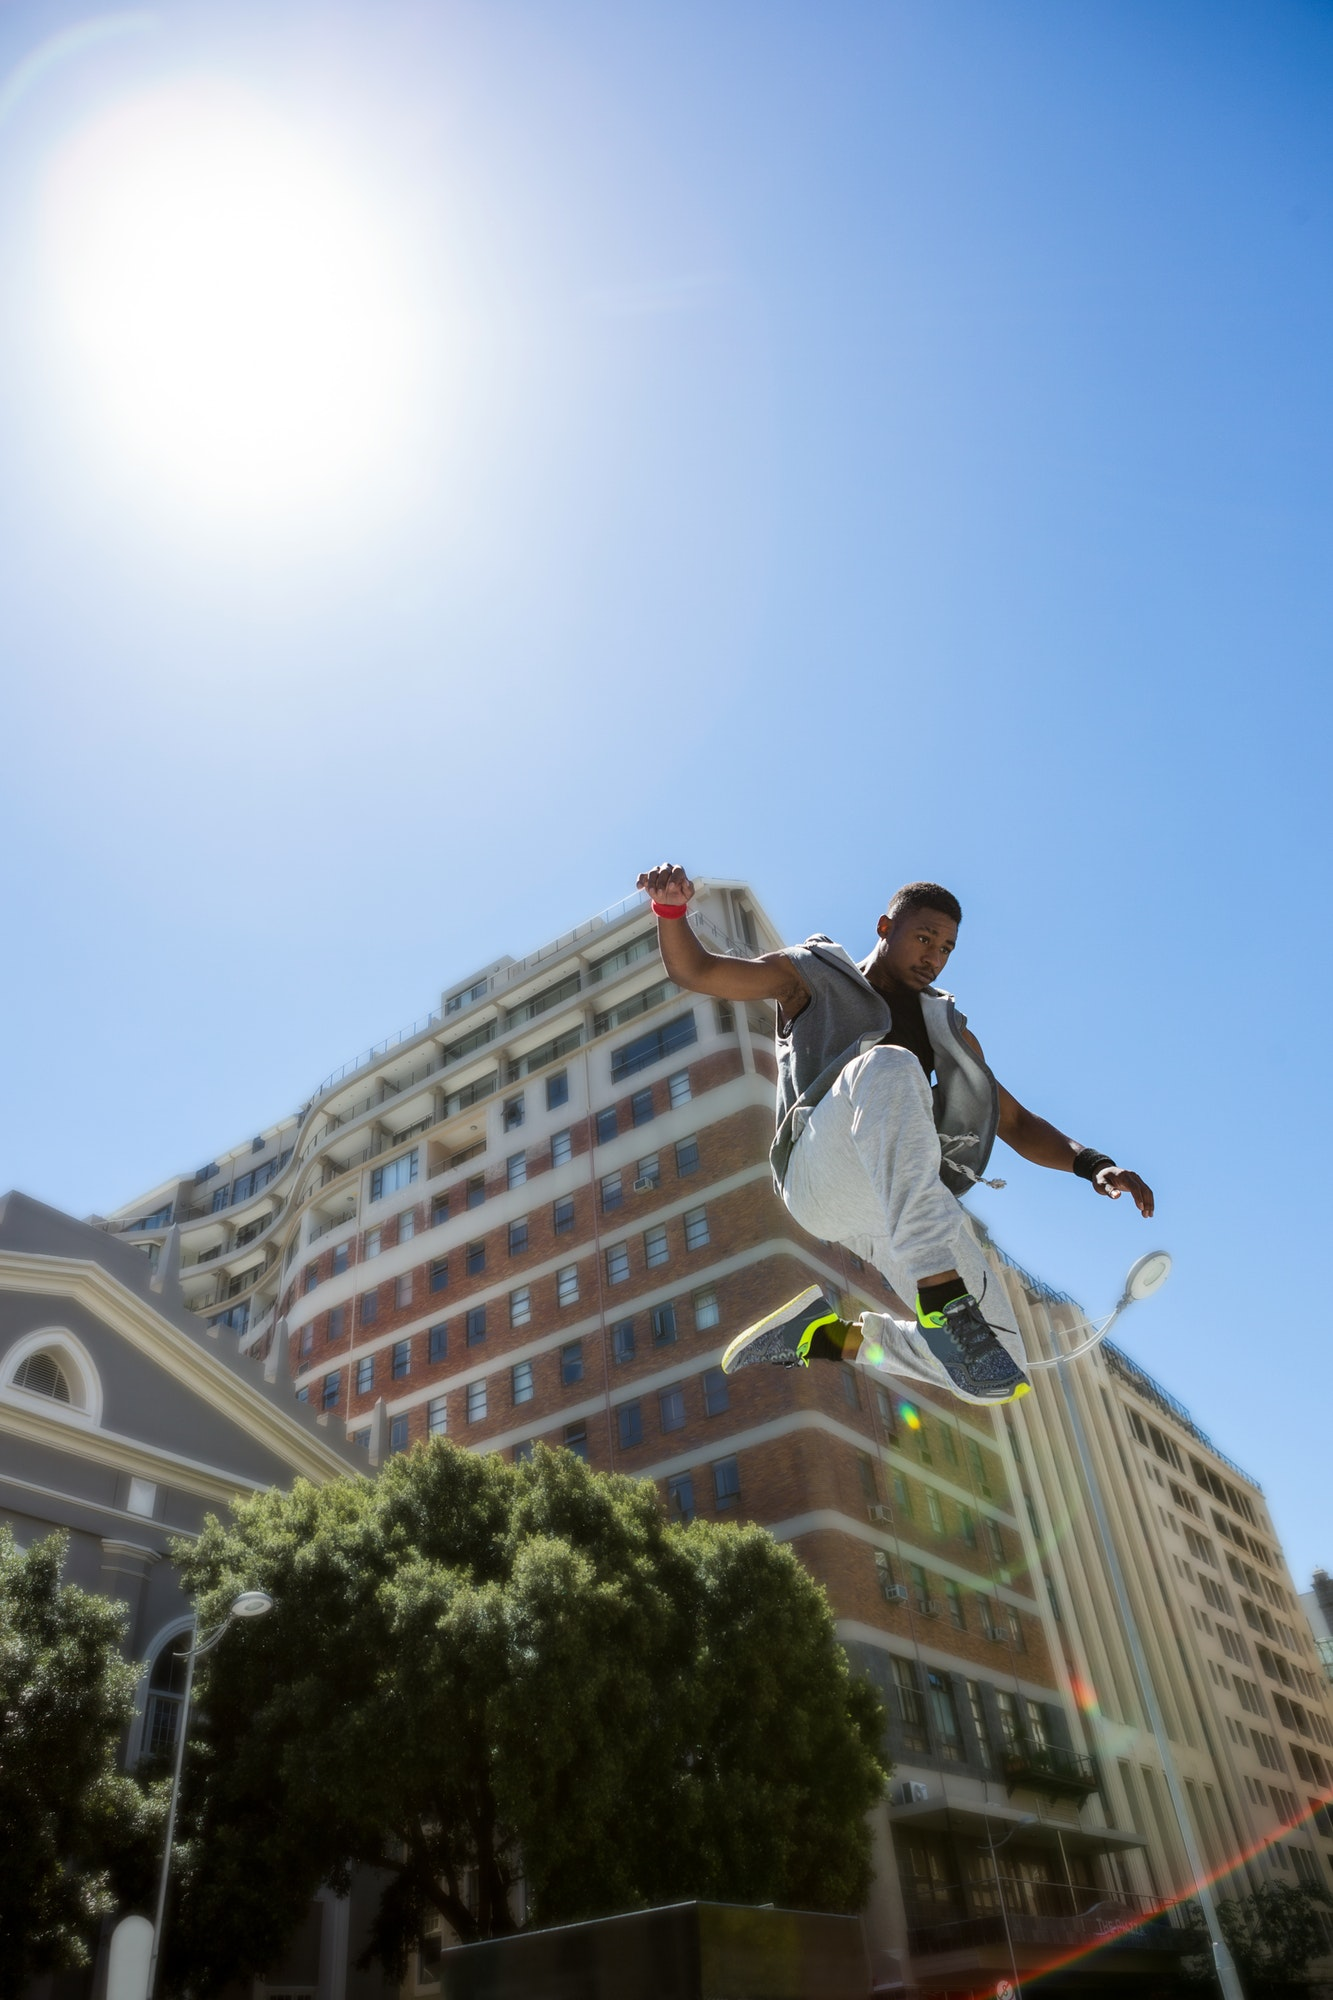 Athletic man doing parkour in the city on a sunny day  30 Comportements des personnes inarrêtables athletic man doing parkour in the city on a sunny day